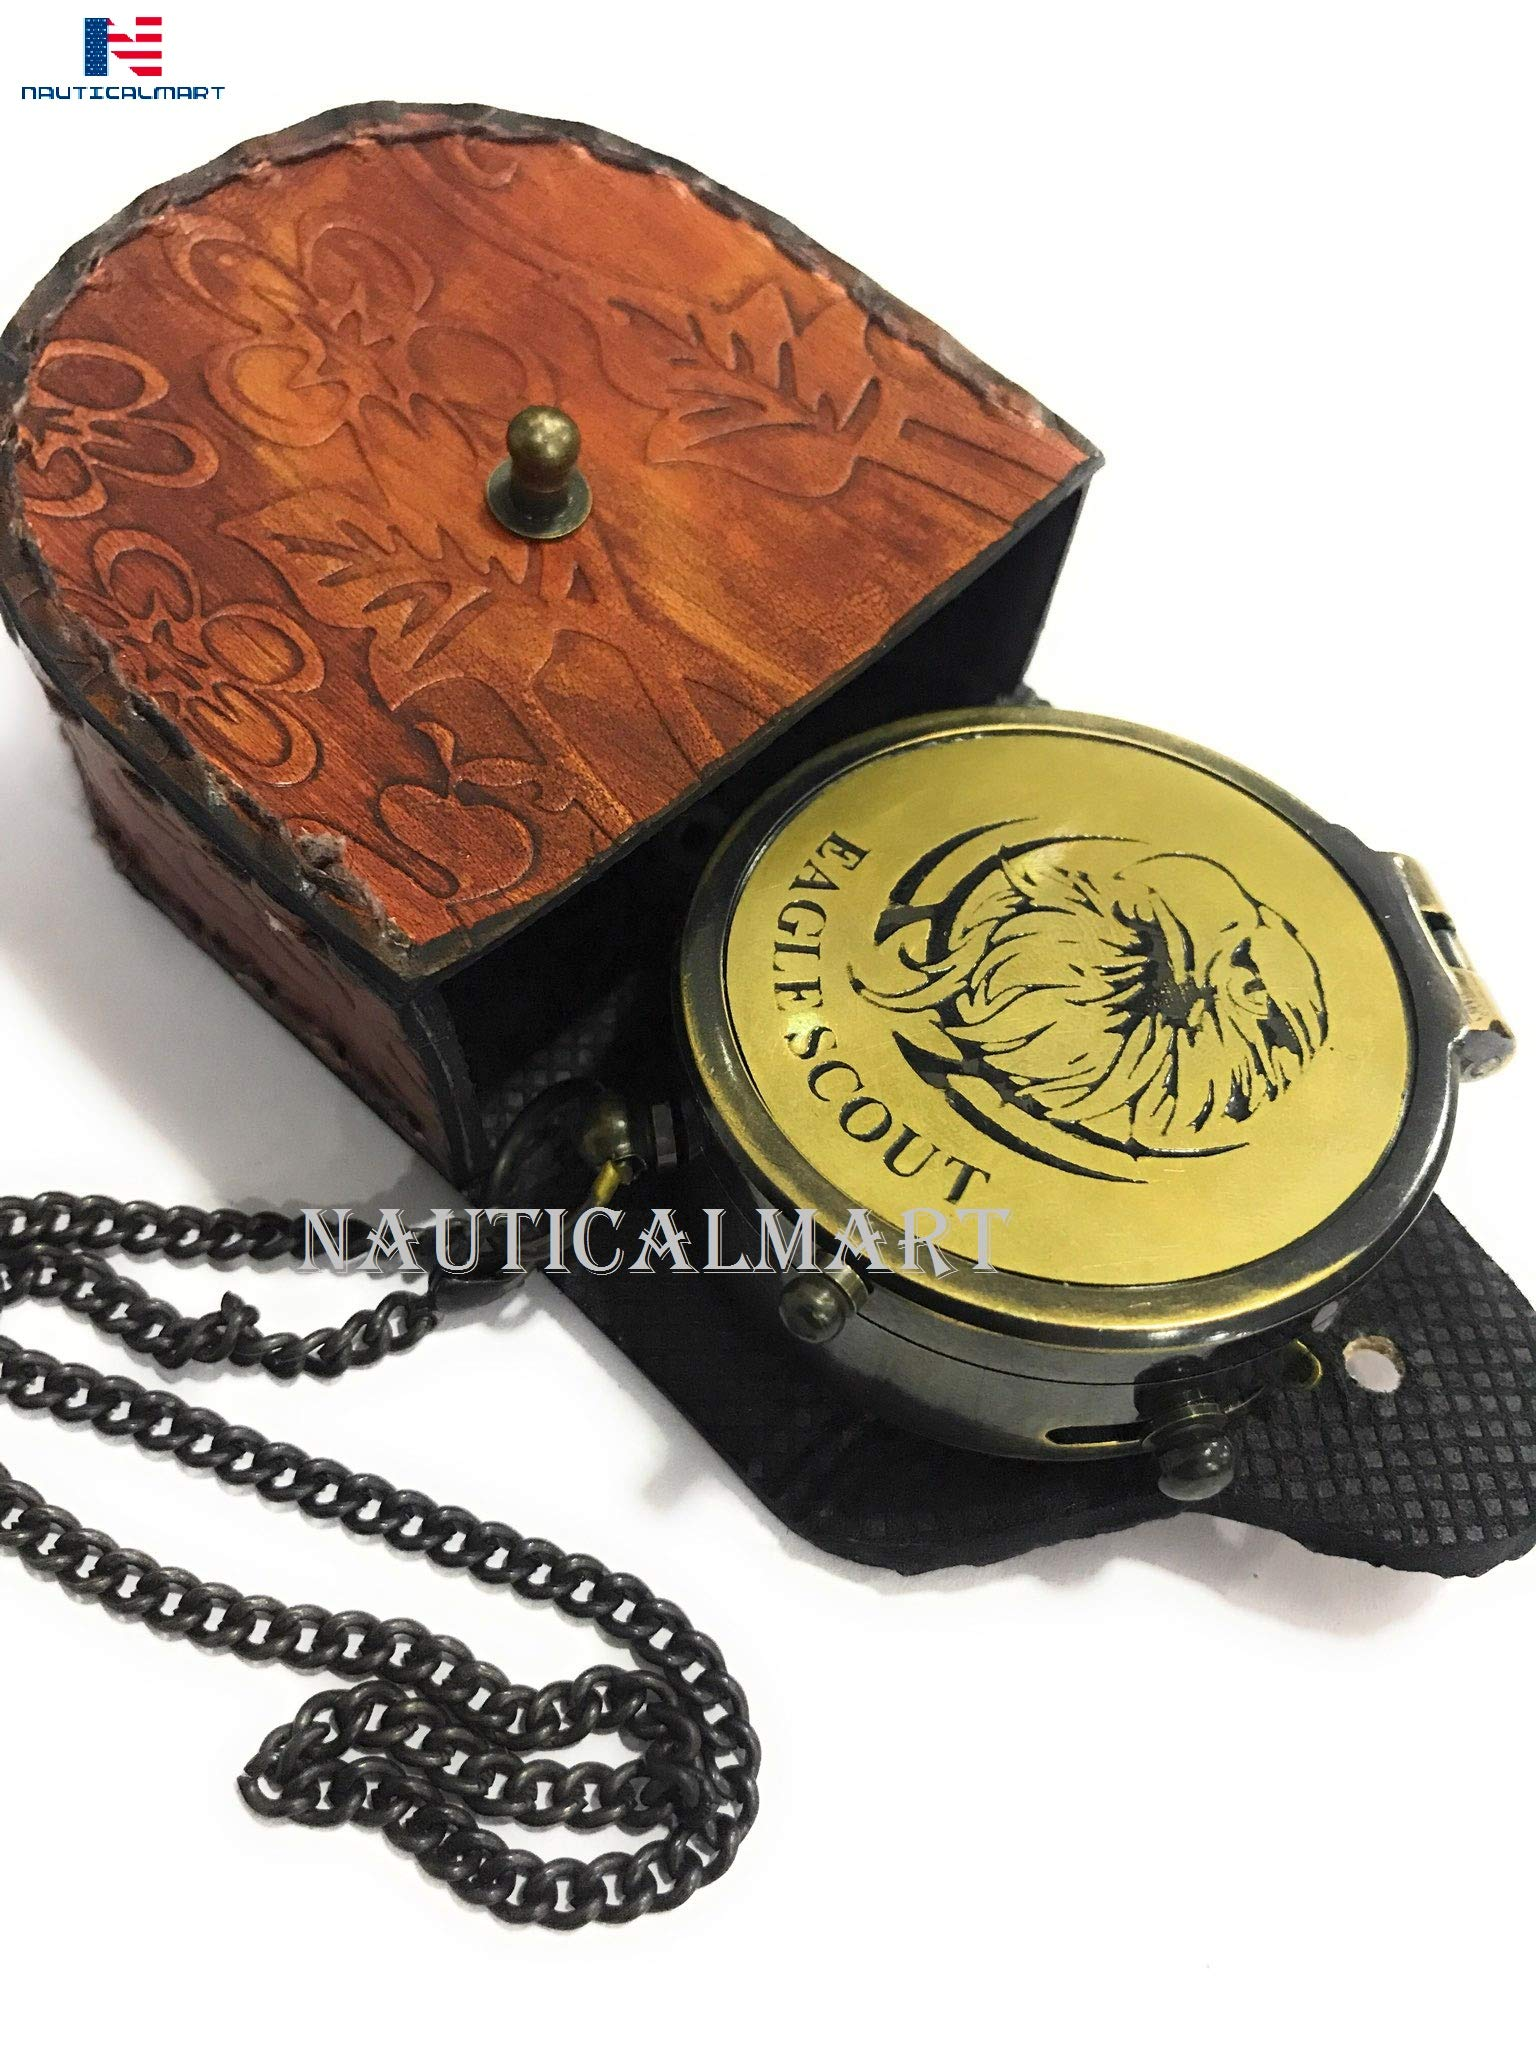 Eagle Scout, Boy Scout Compass Engraved Vintage Style Working Compass Gift